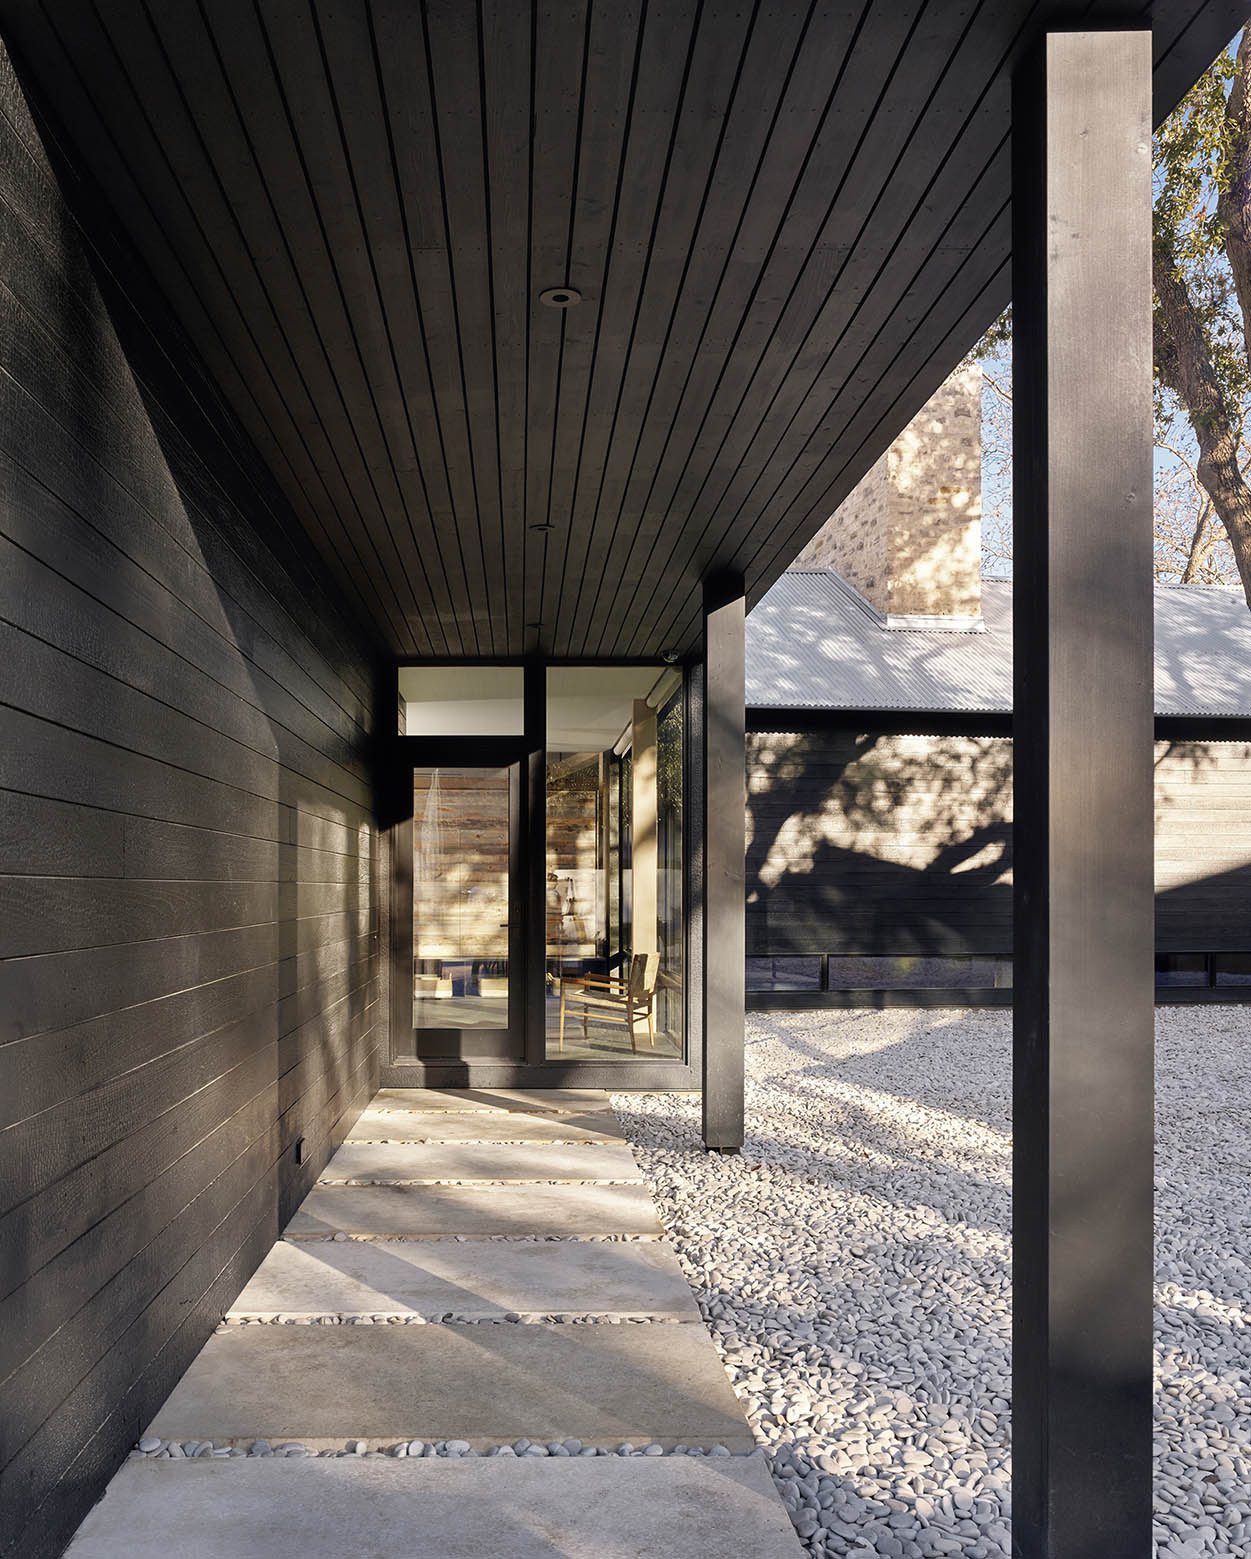 Covered Walkway Designs For Homes: Gallery Of Austin Home / Aamodt / Plumb Architects